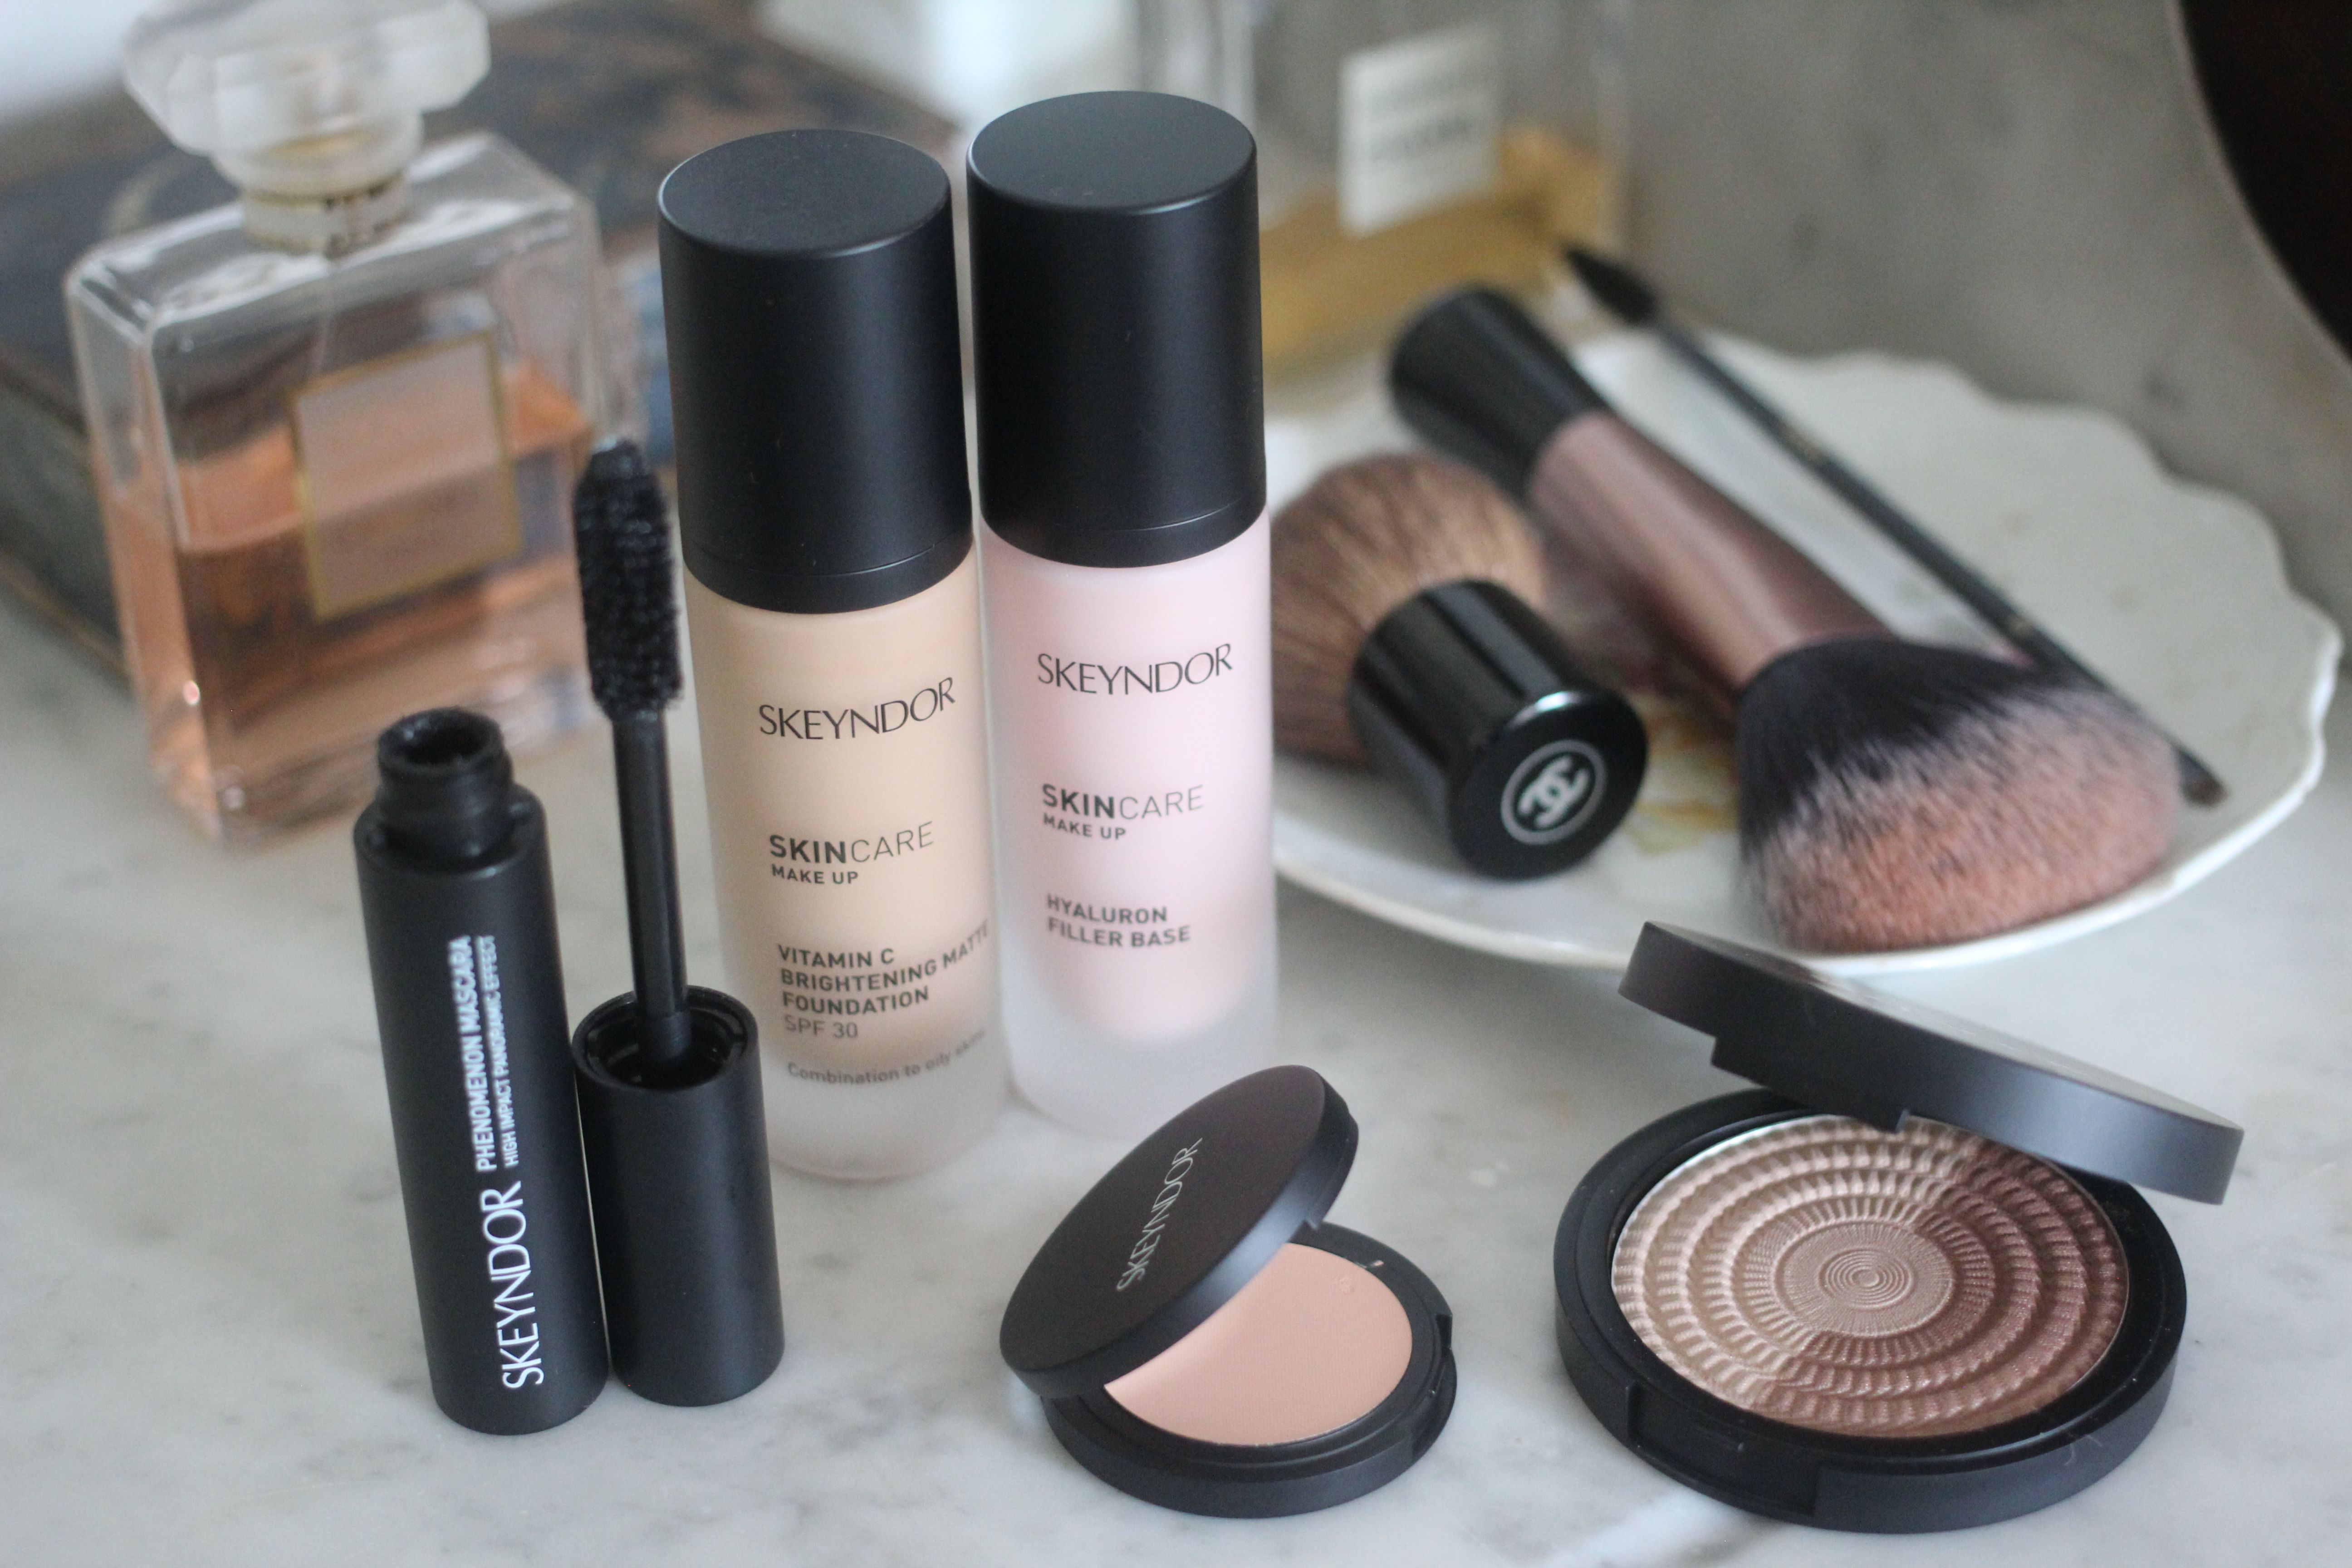 THE SKINCARE MAKE UP